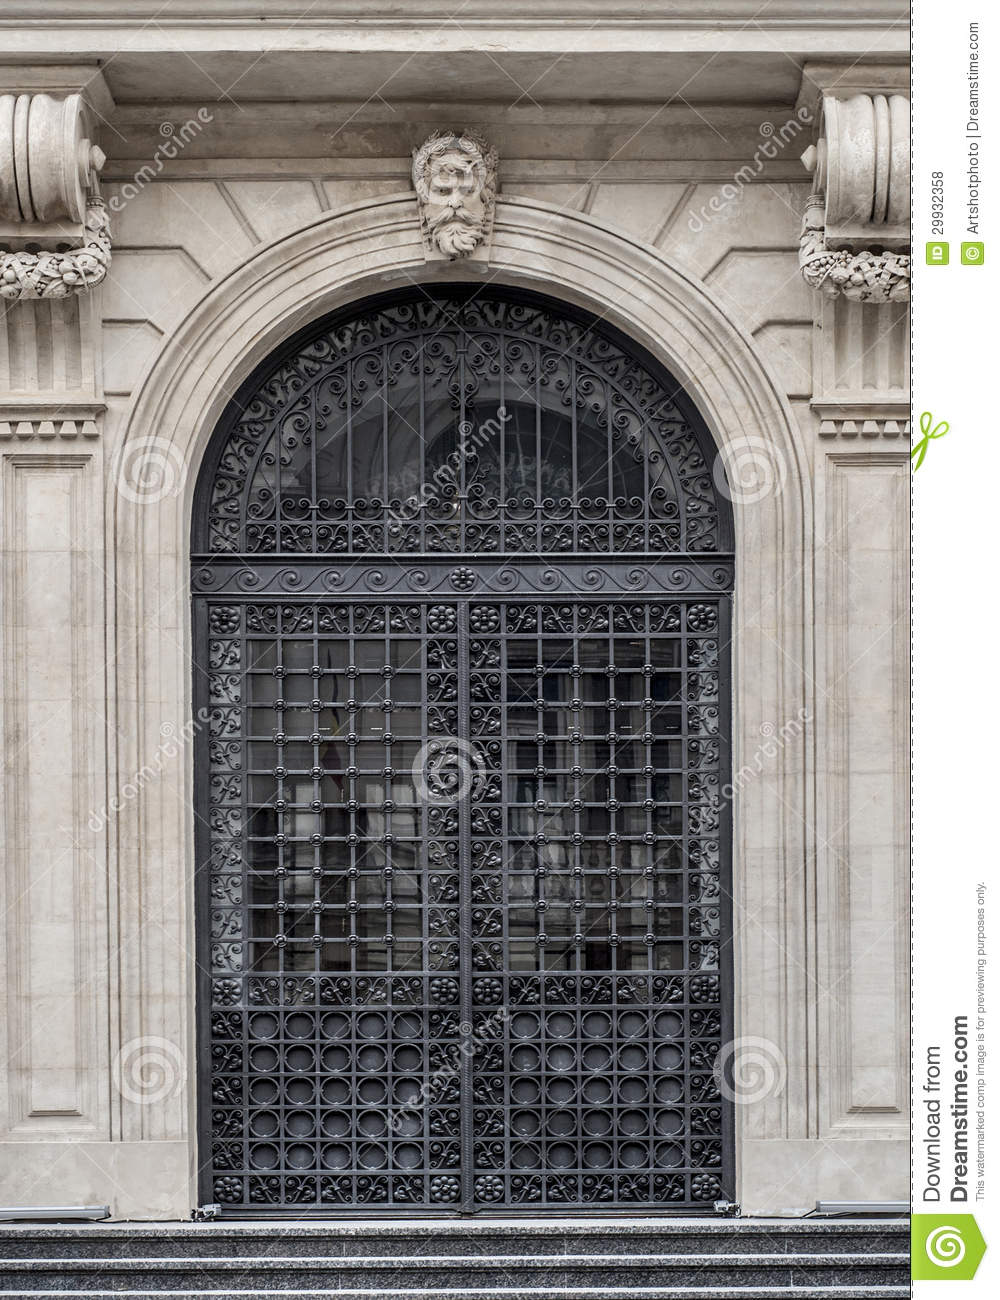 Wrought Iron Entrance Door Of A Historic Building Royalty